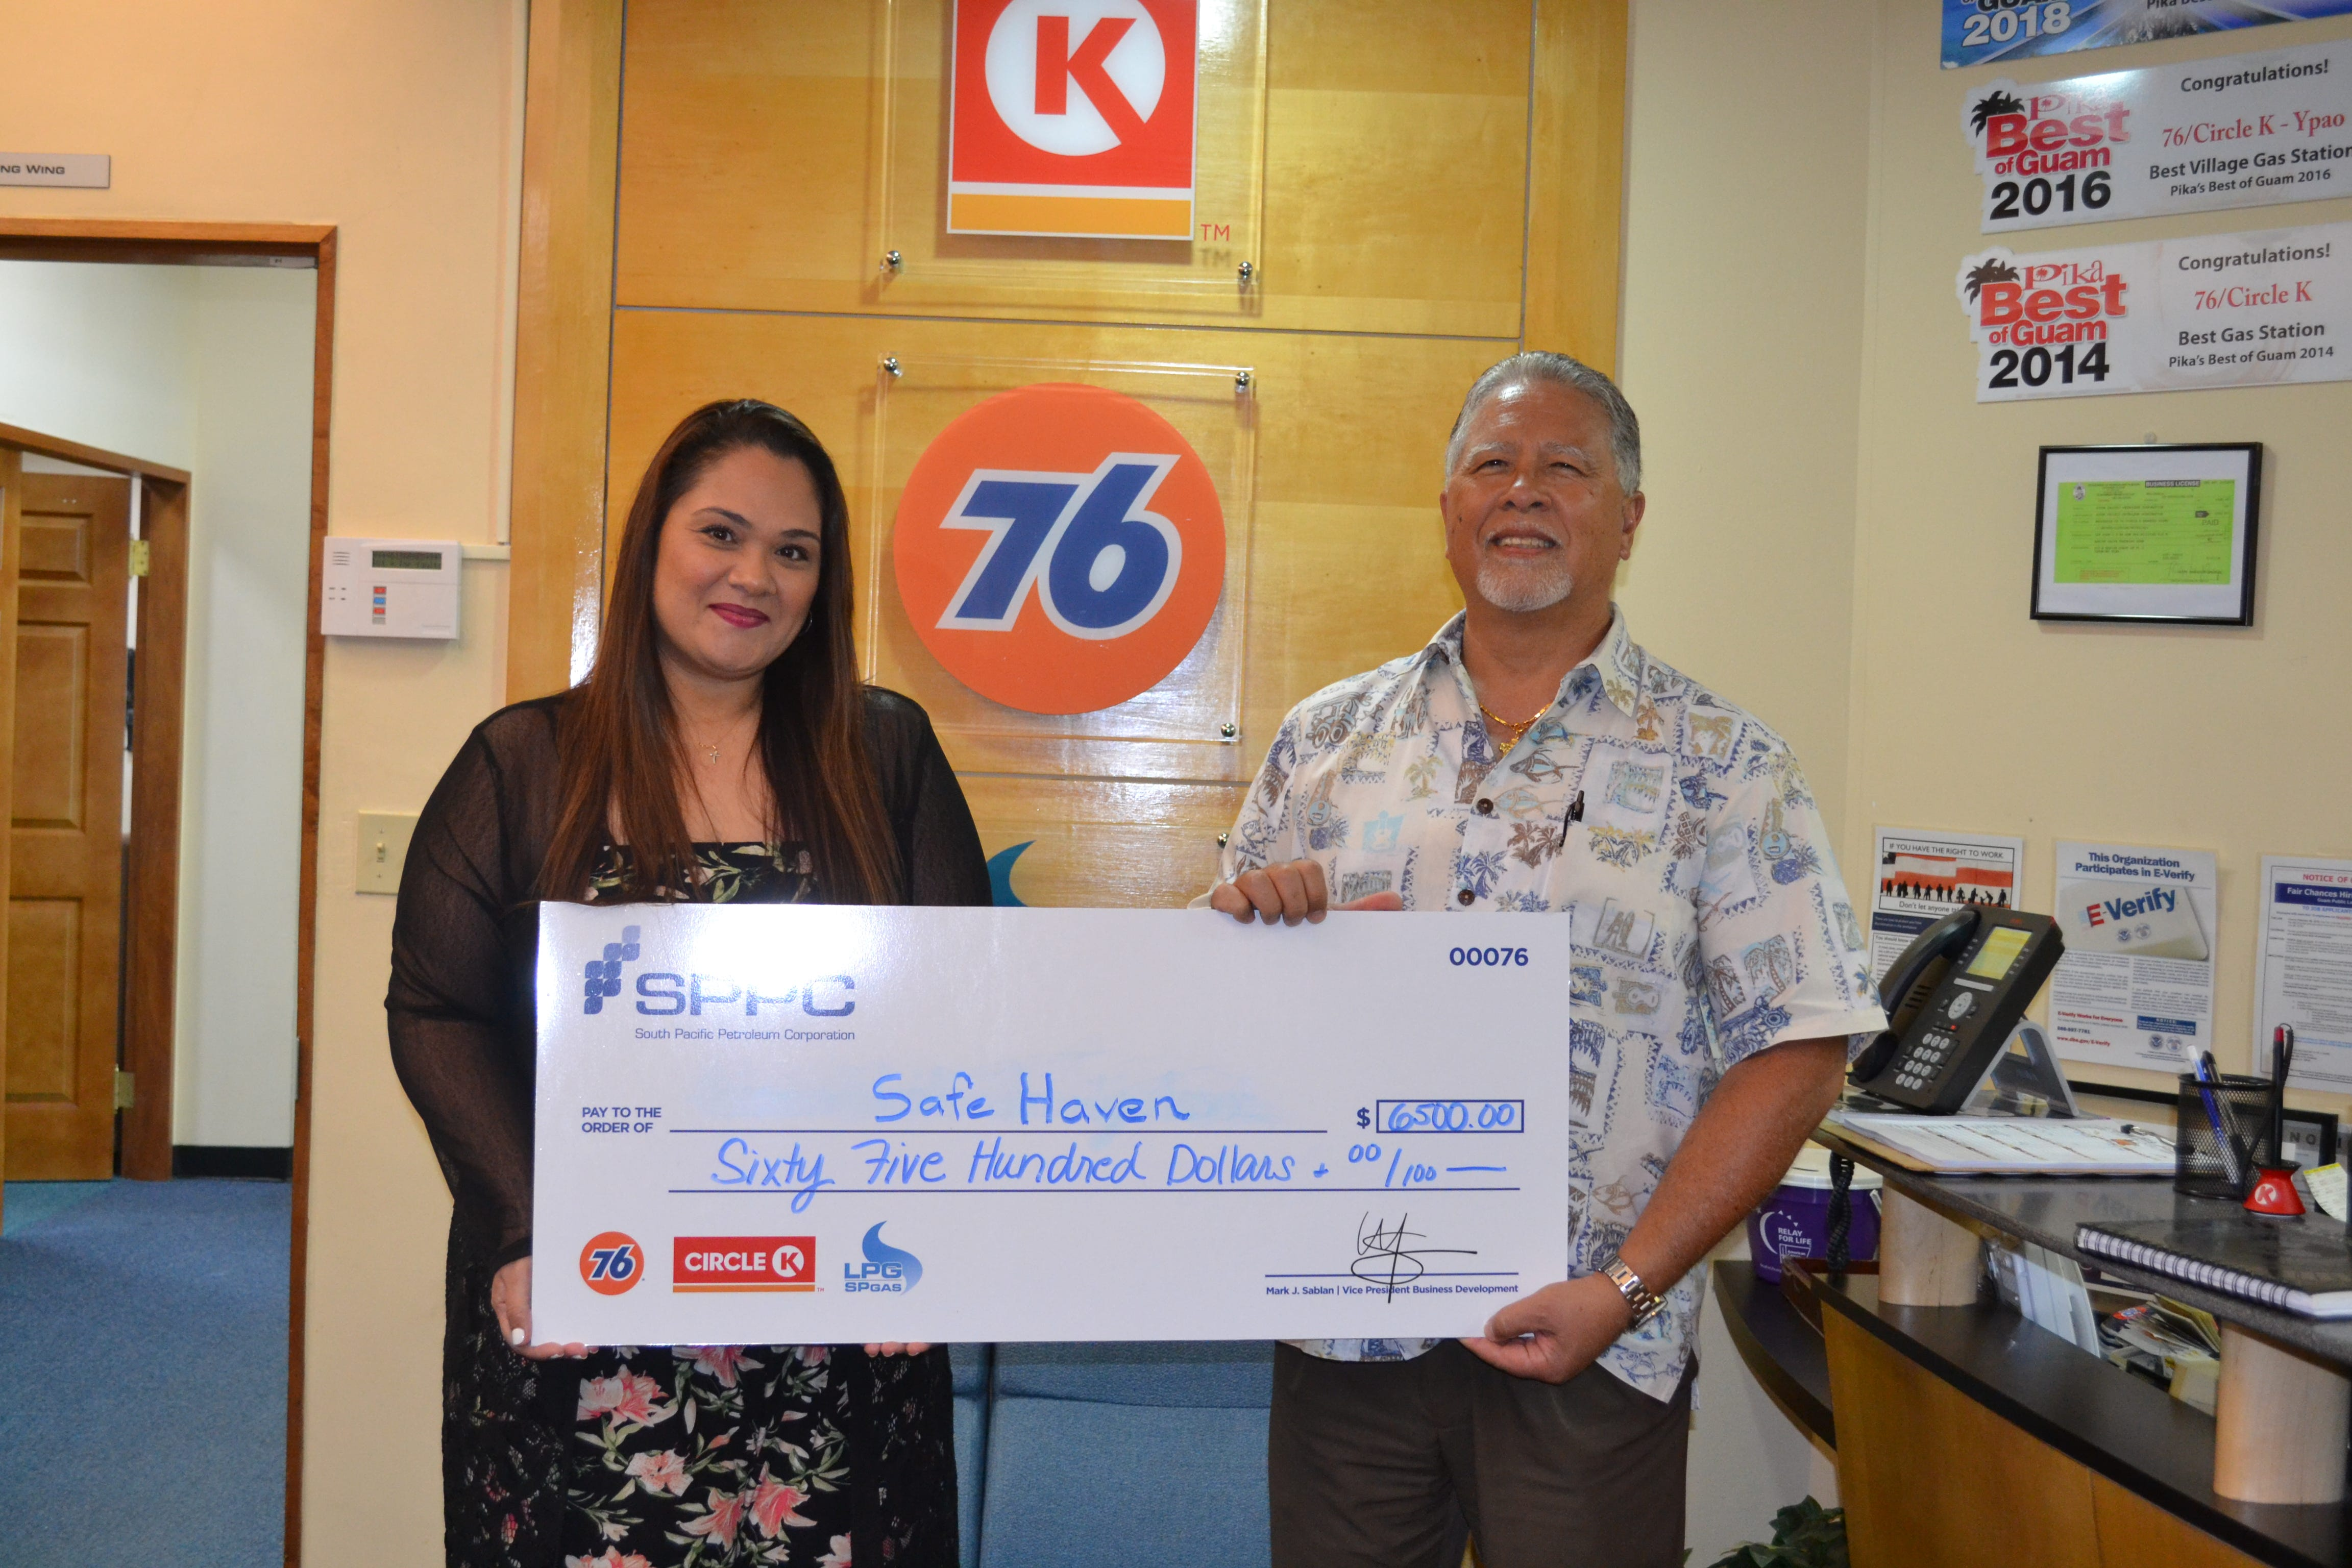 South Pacific Petroleum Corporation presented a check for $6,500 to Safe Haven Guam Pregnancy Center on Nov. 14. The proceeds were raised from SPPC's 15th annual 76 Drive for Charity Golf Tournament held Sept. 28 at the Leo Palace Golf Resort. Pictured from left: Jen Nauta, director and Mark J. Sablan, SPPC'S vice-president business development.